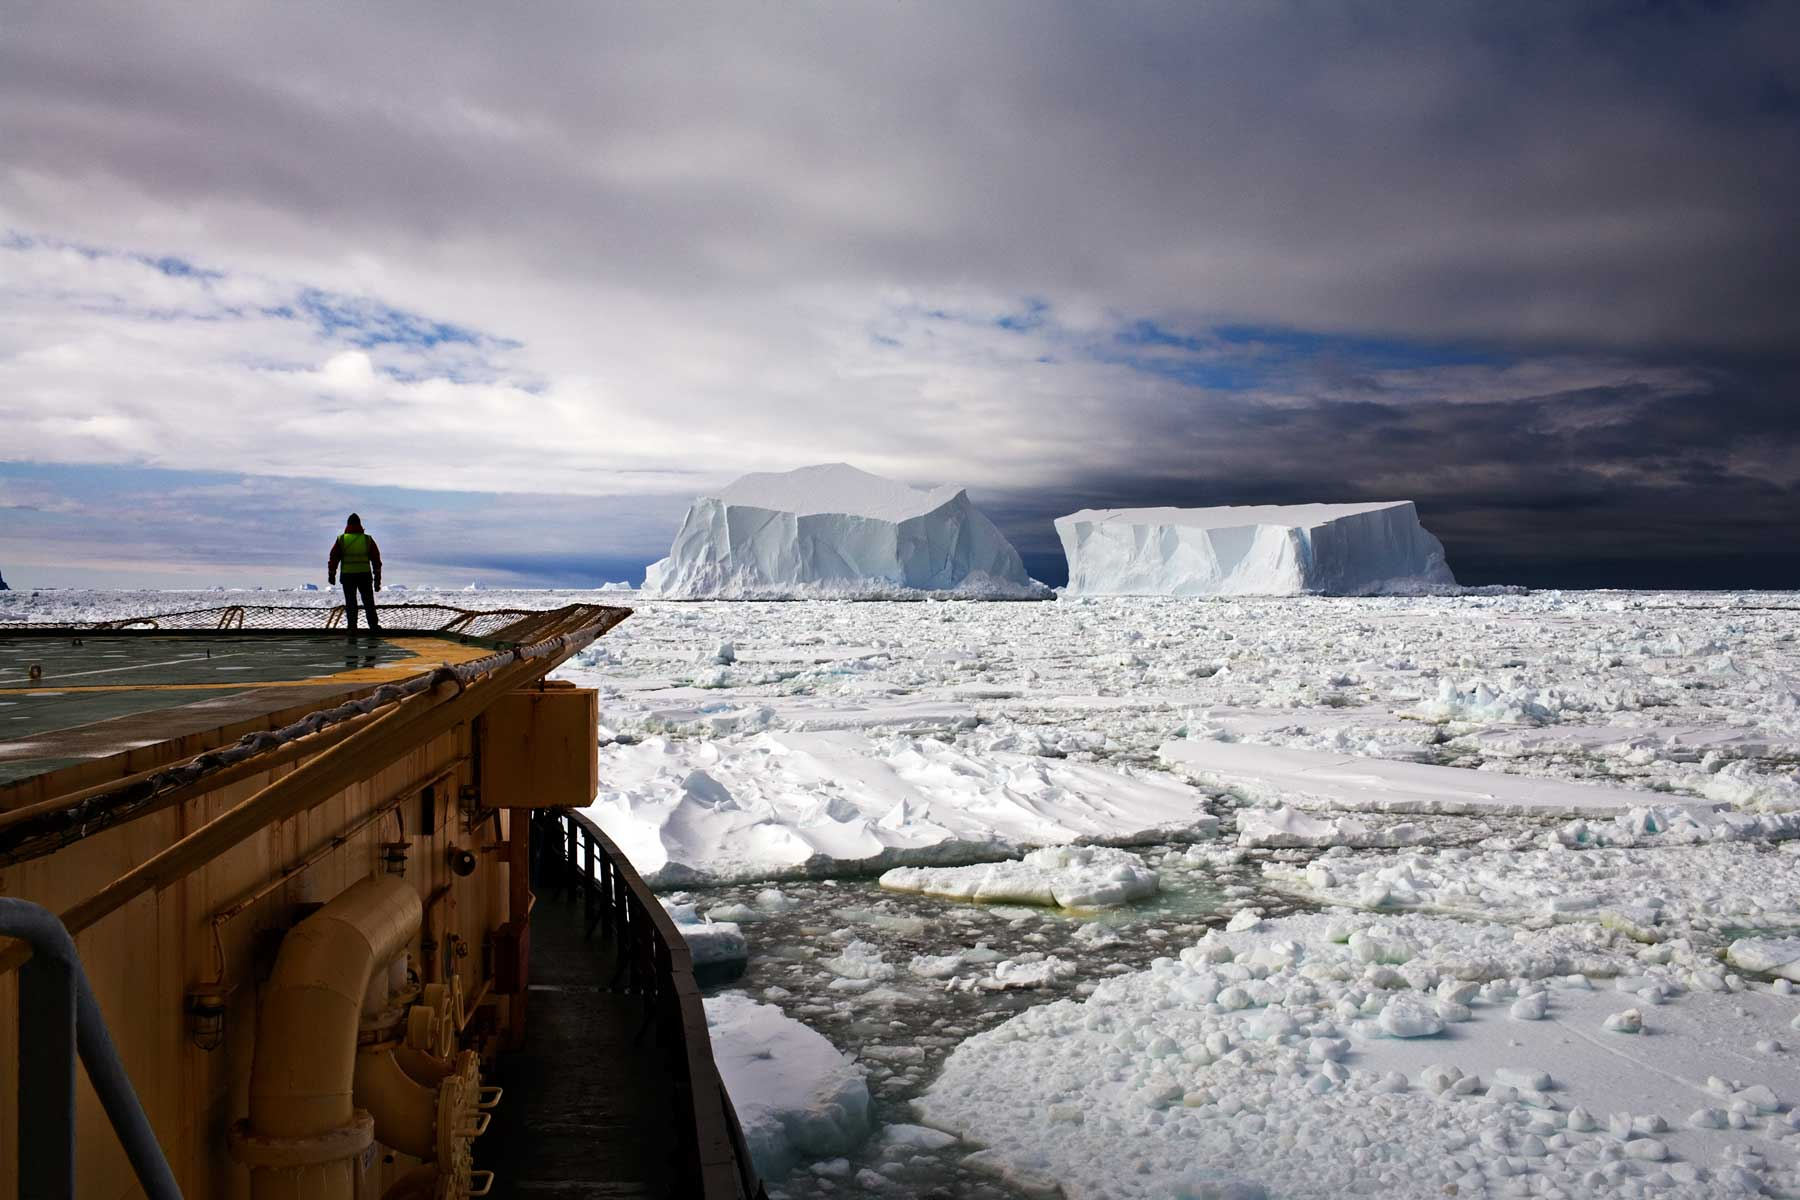 Looking at the Icebergs, Near Franklin Island, Ross Sea, Antarctica in 2006.